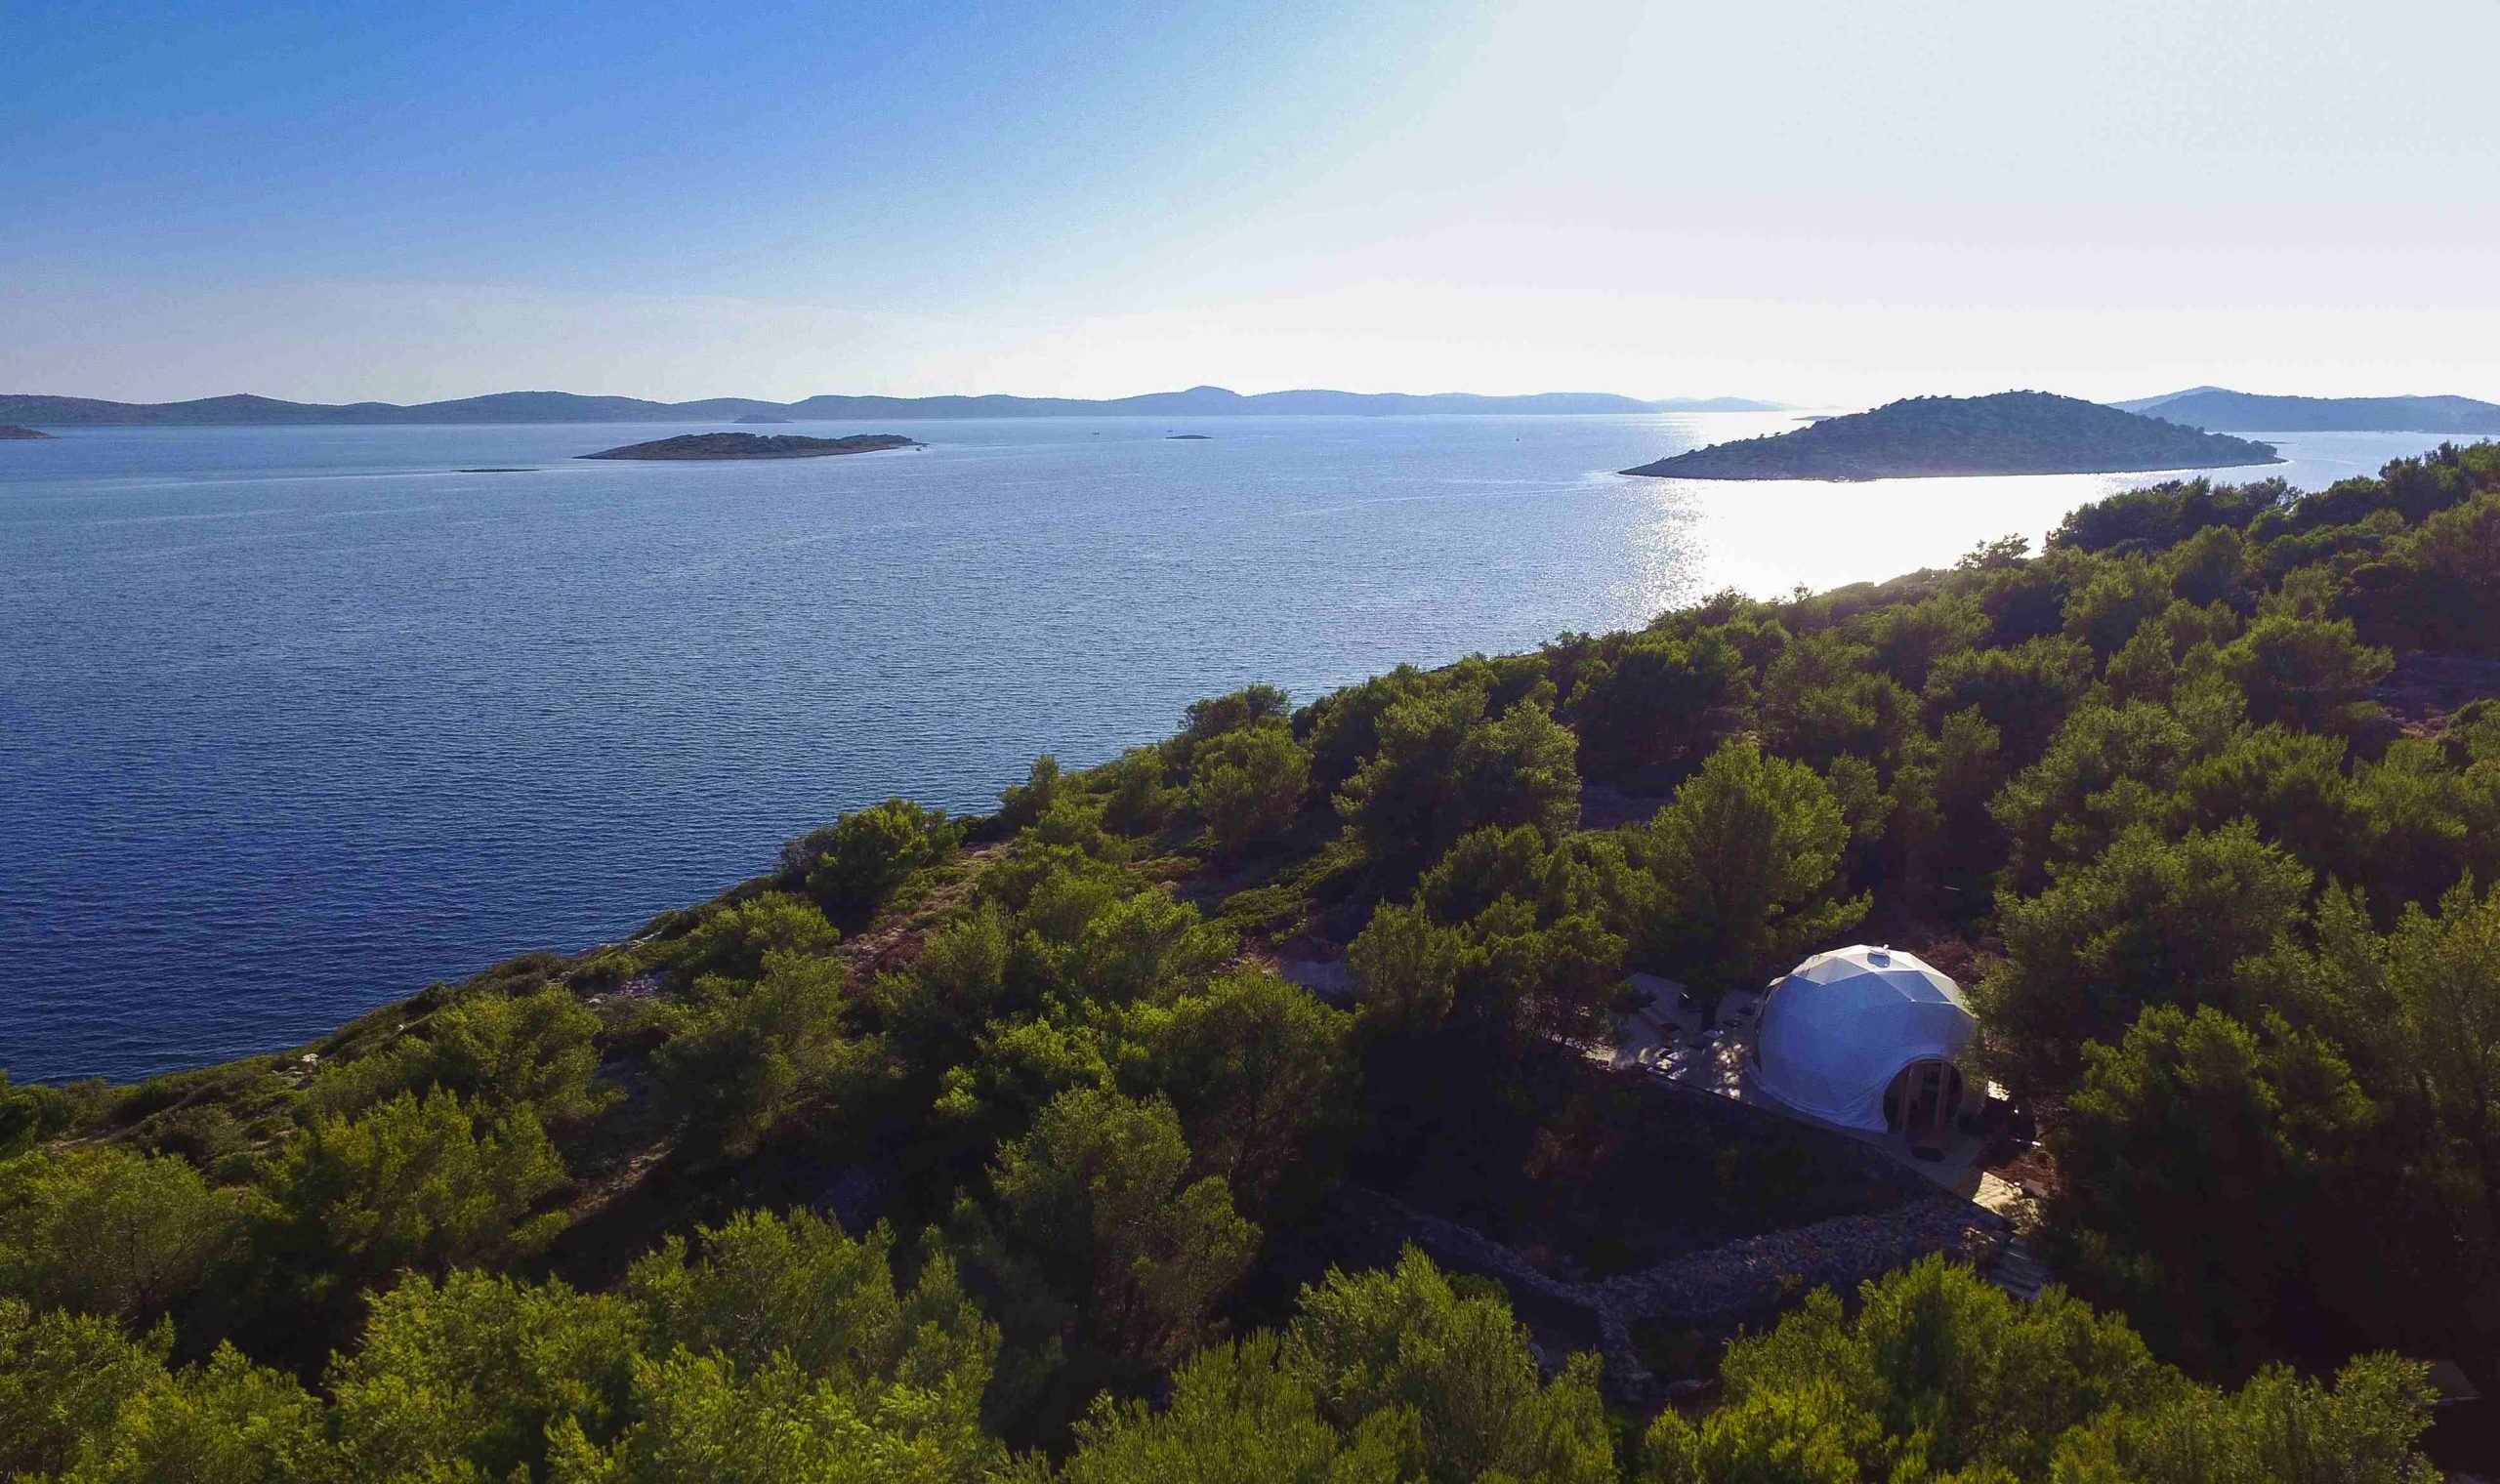 Croatia's First Luxury Glamping Dome Opens for Tourists